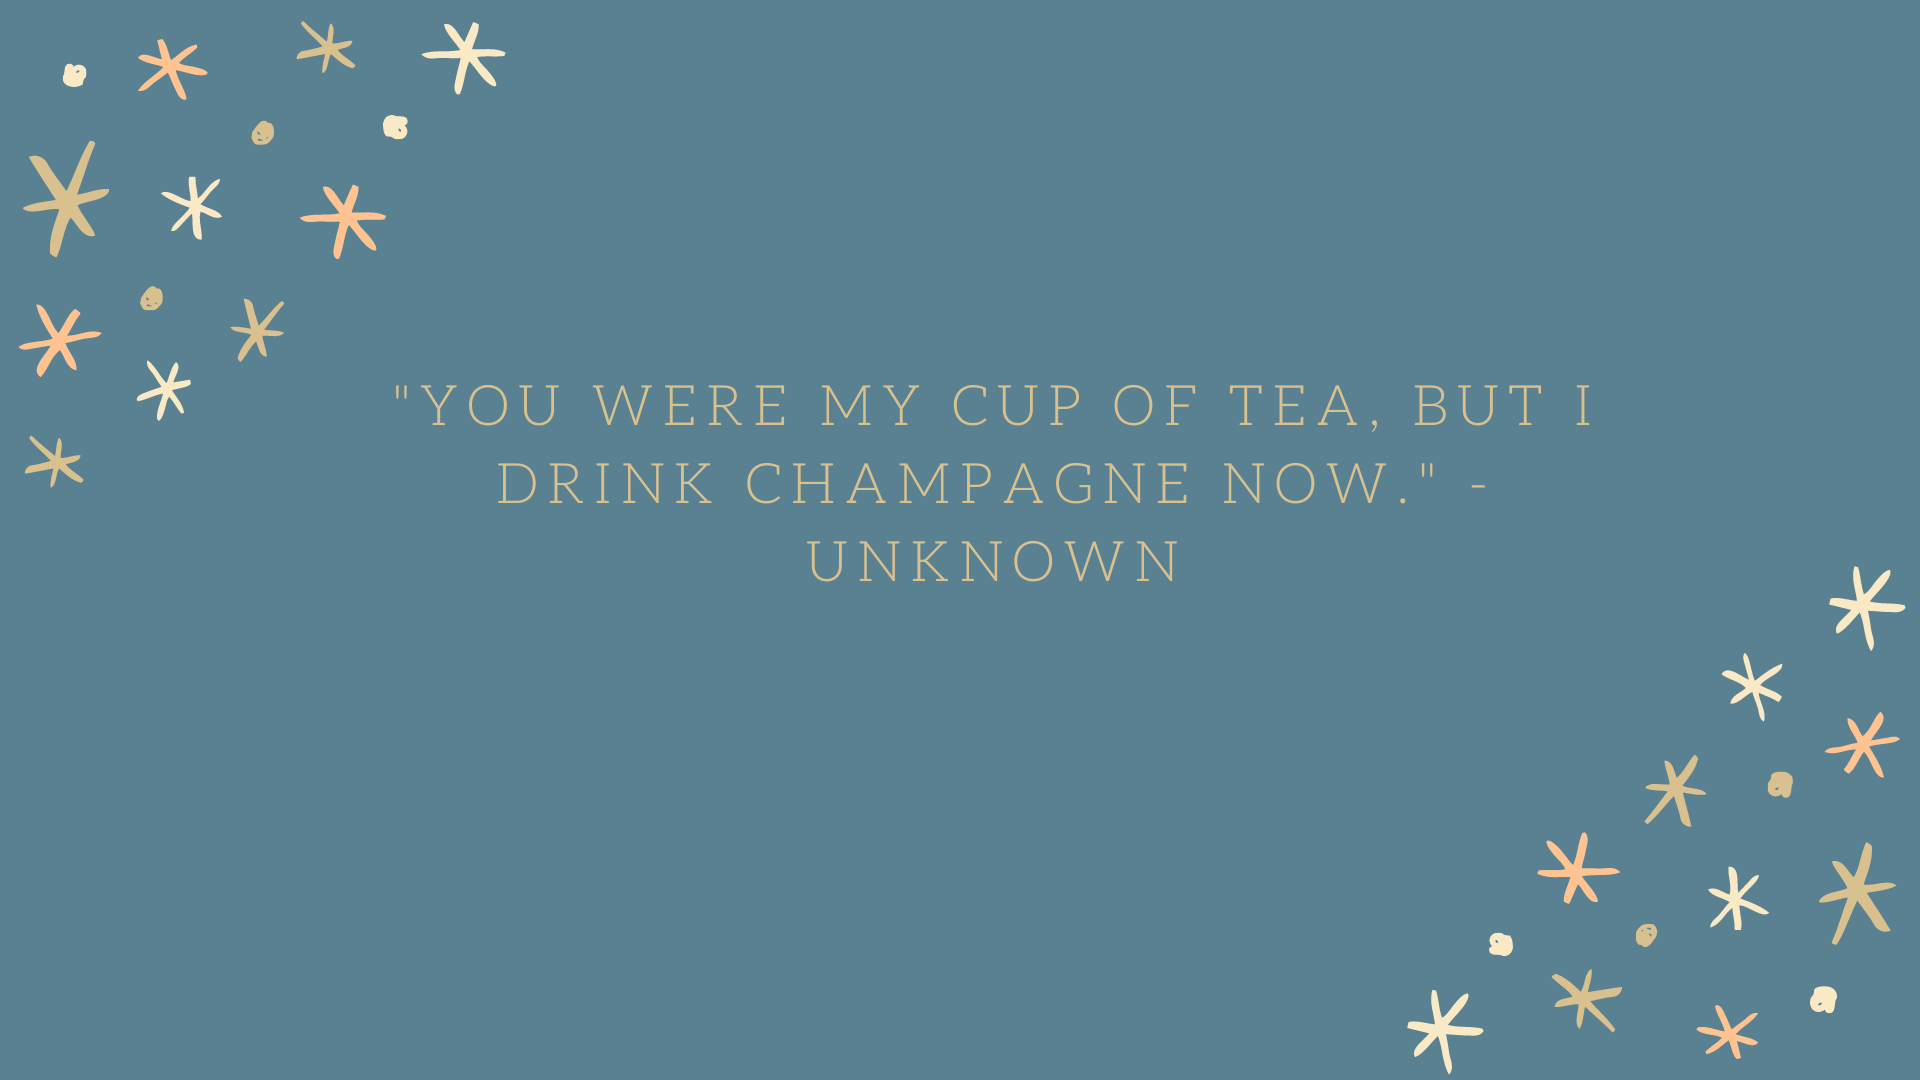 """You were my cup of tea, but I drink champagne now."" - Unknown"